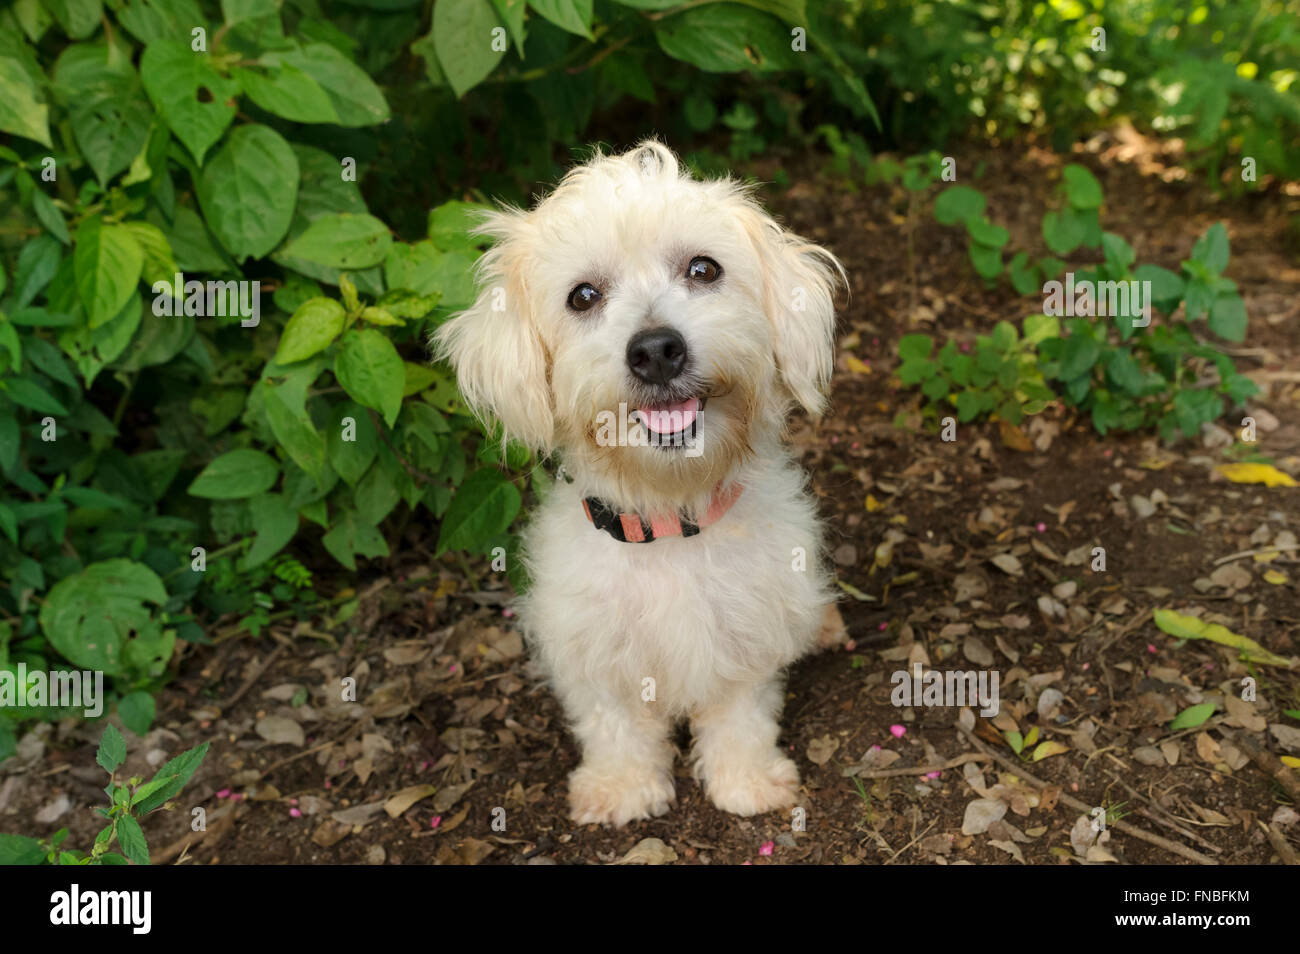 Cool Floppy Ears Brown Adorable Dog - happy-dog-is-a-white-happy-looking-dog-with-cute-floppy-ears-and-his-FNBFKM  Pictures_731143  .jpg